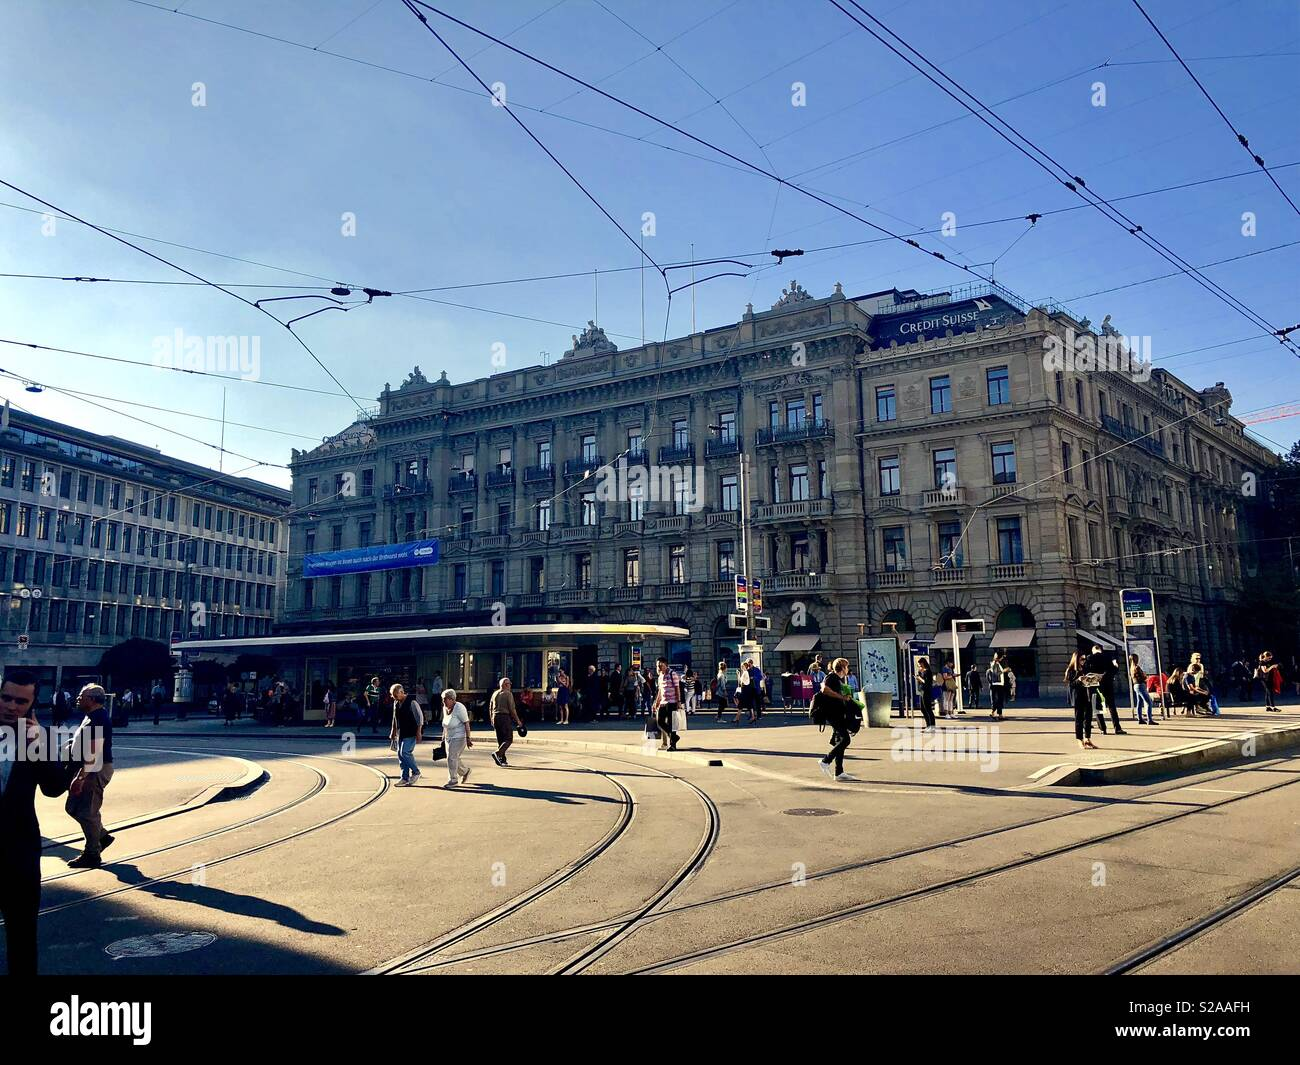 Paradeplatz with Buildings of UBS and Credit Suisse, and busy Tram Station, Zurich, Switzerland, Europe - Stock Image